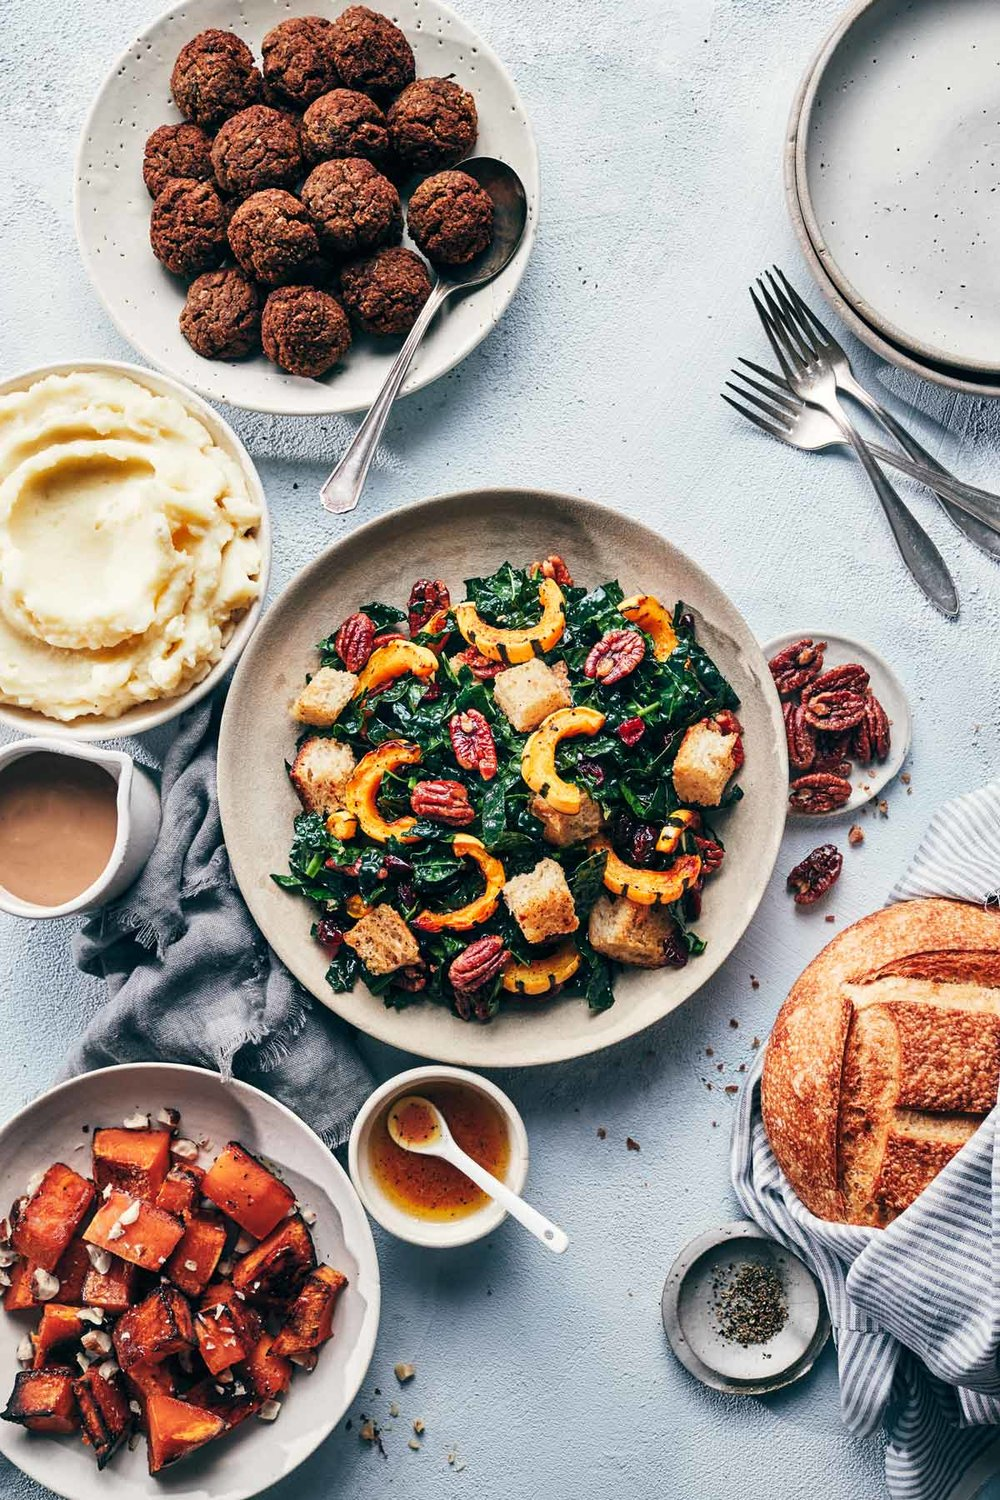 Festive Kale Slaw with Roasted Squash | Evergreen Kitchen | Vegan, Gluten Free (option)